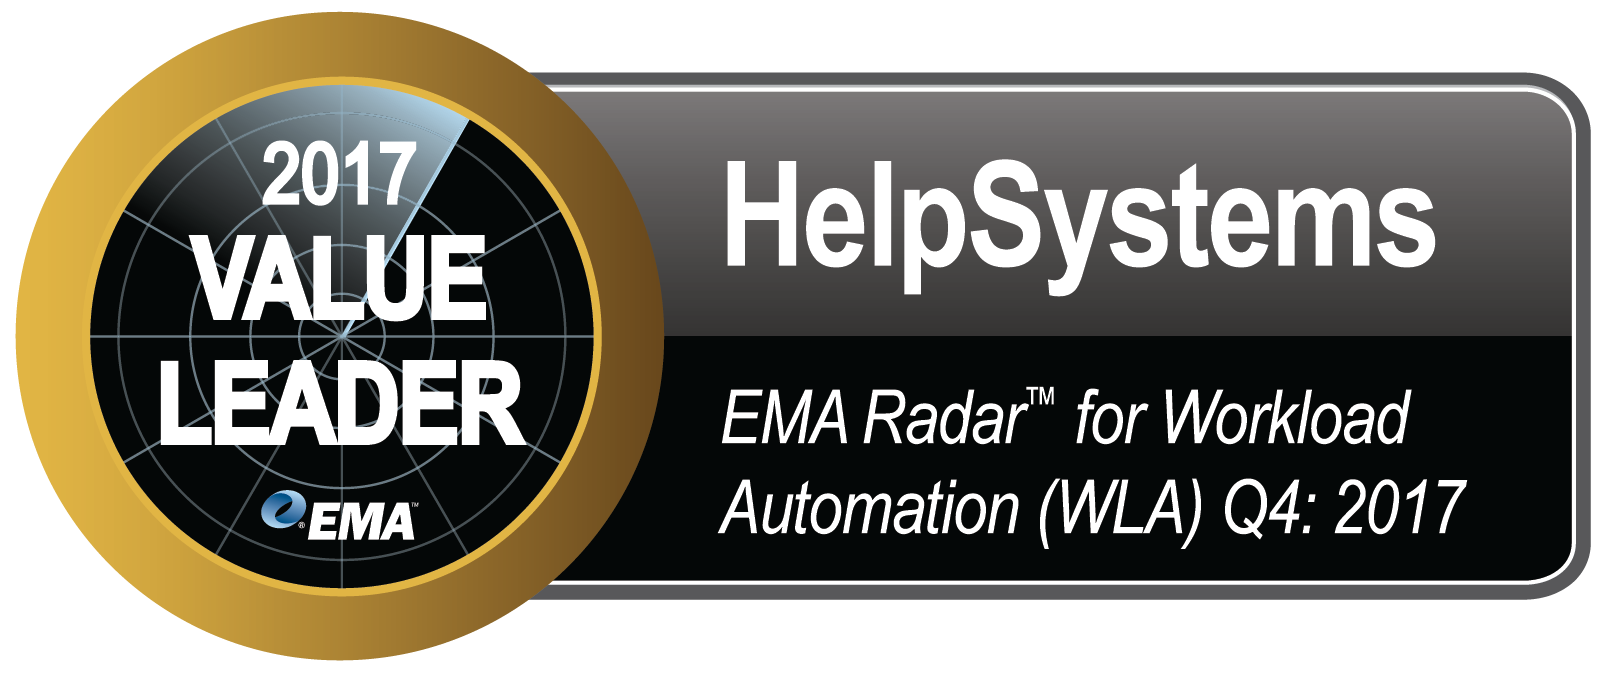 HelpSystems - 2017 Value Leader EMA WLA Report